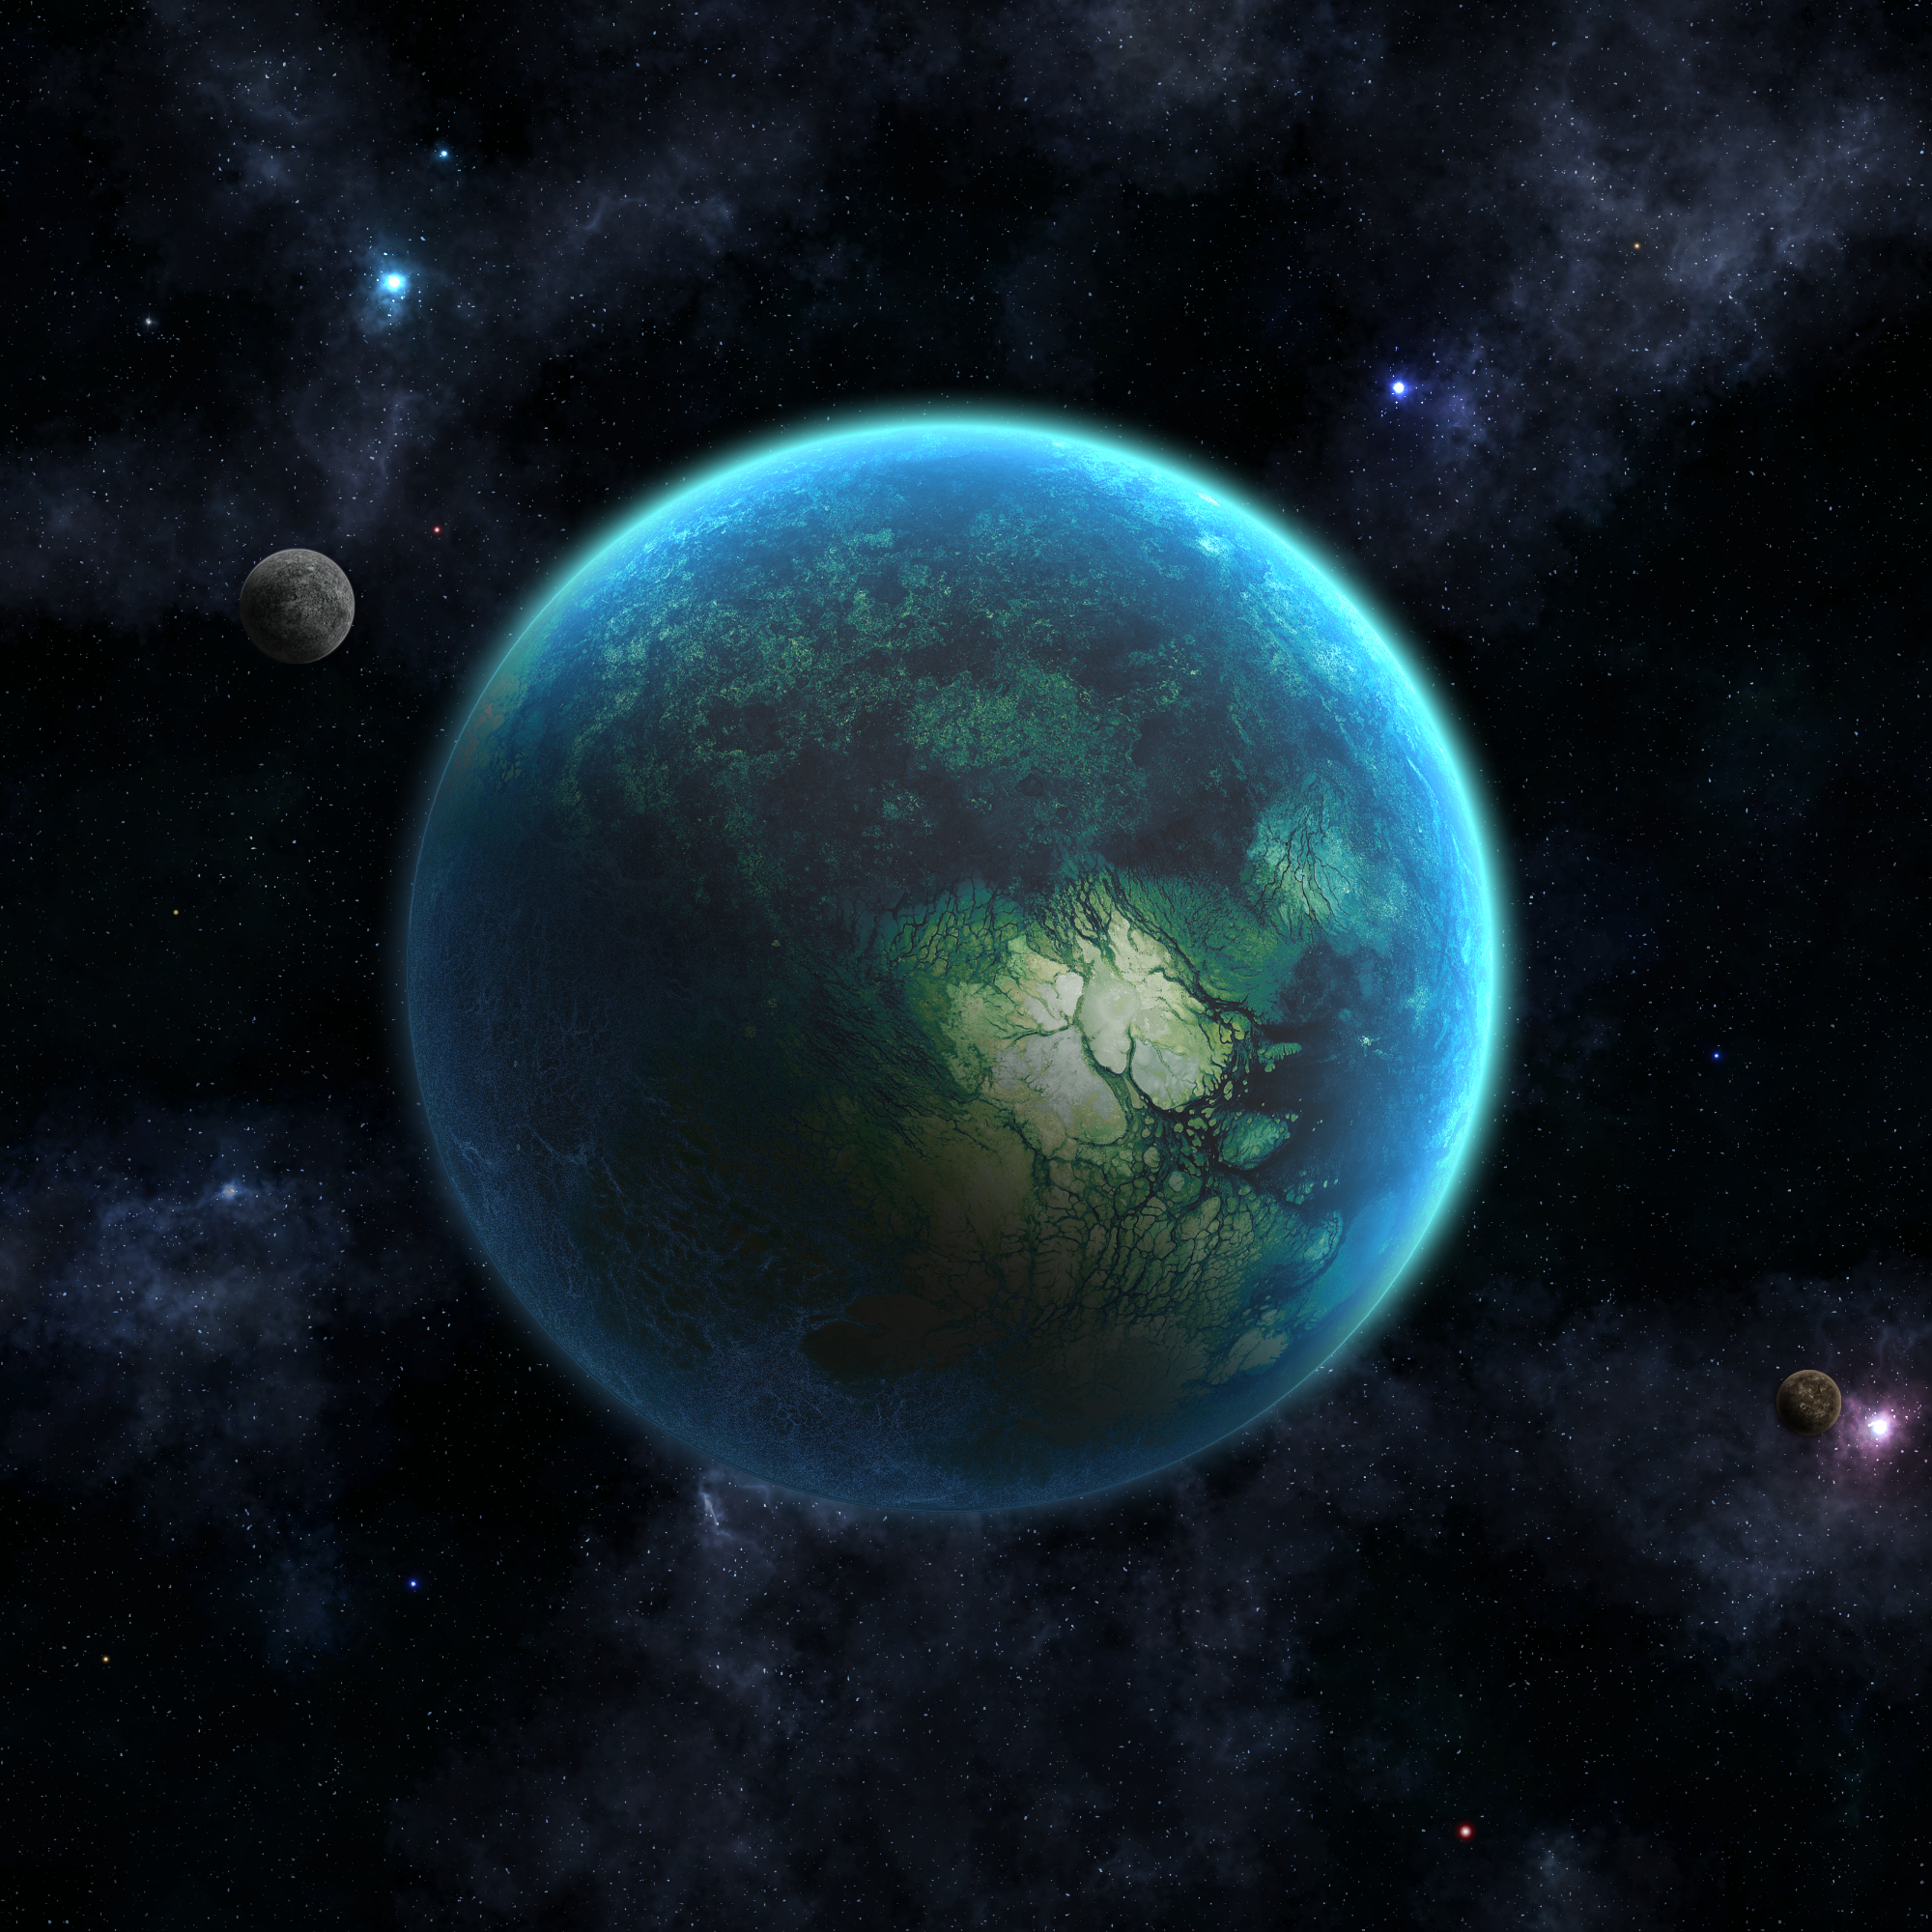 Water Planet by IO23 on DeviantArt